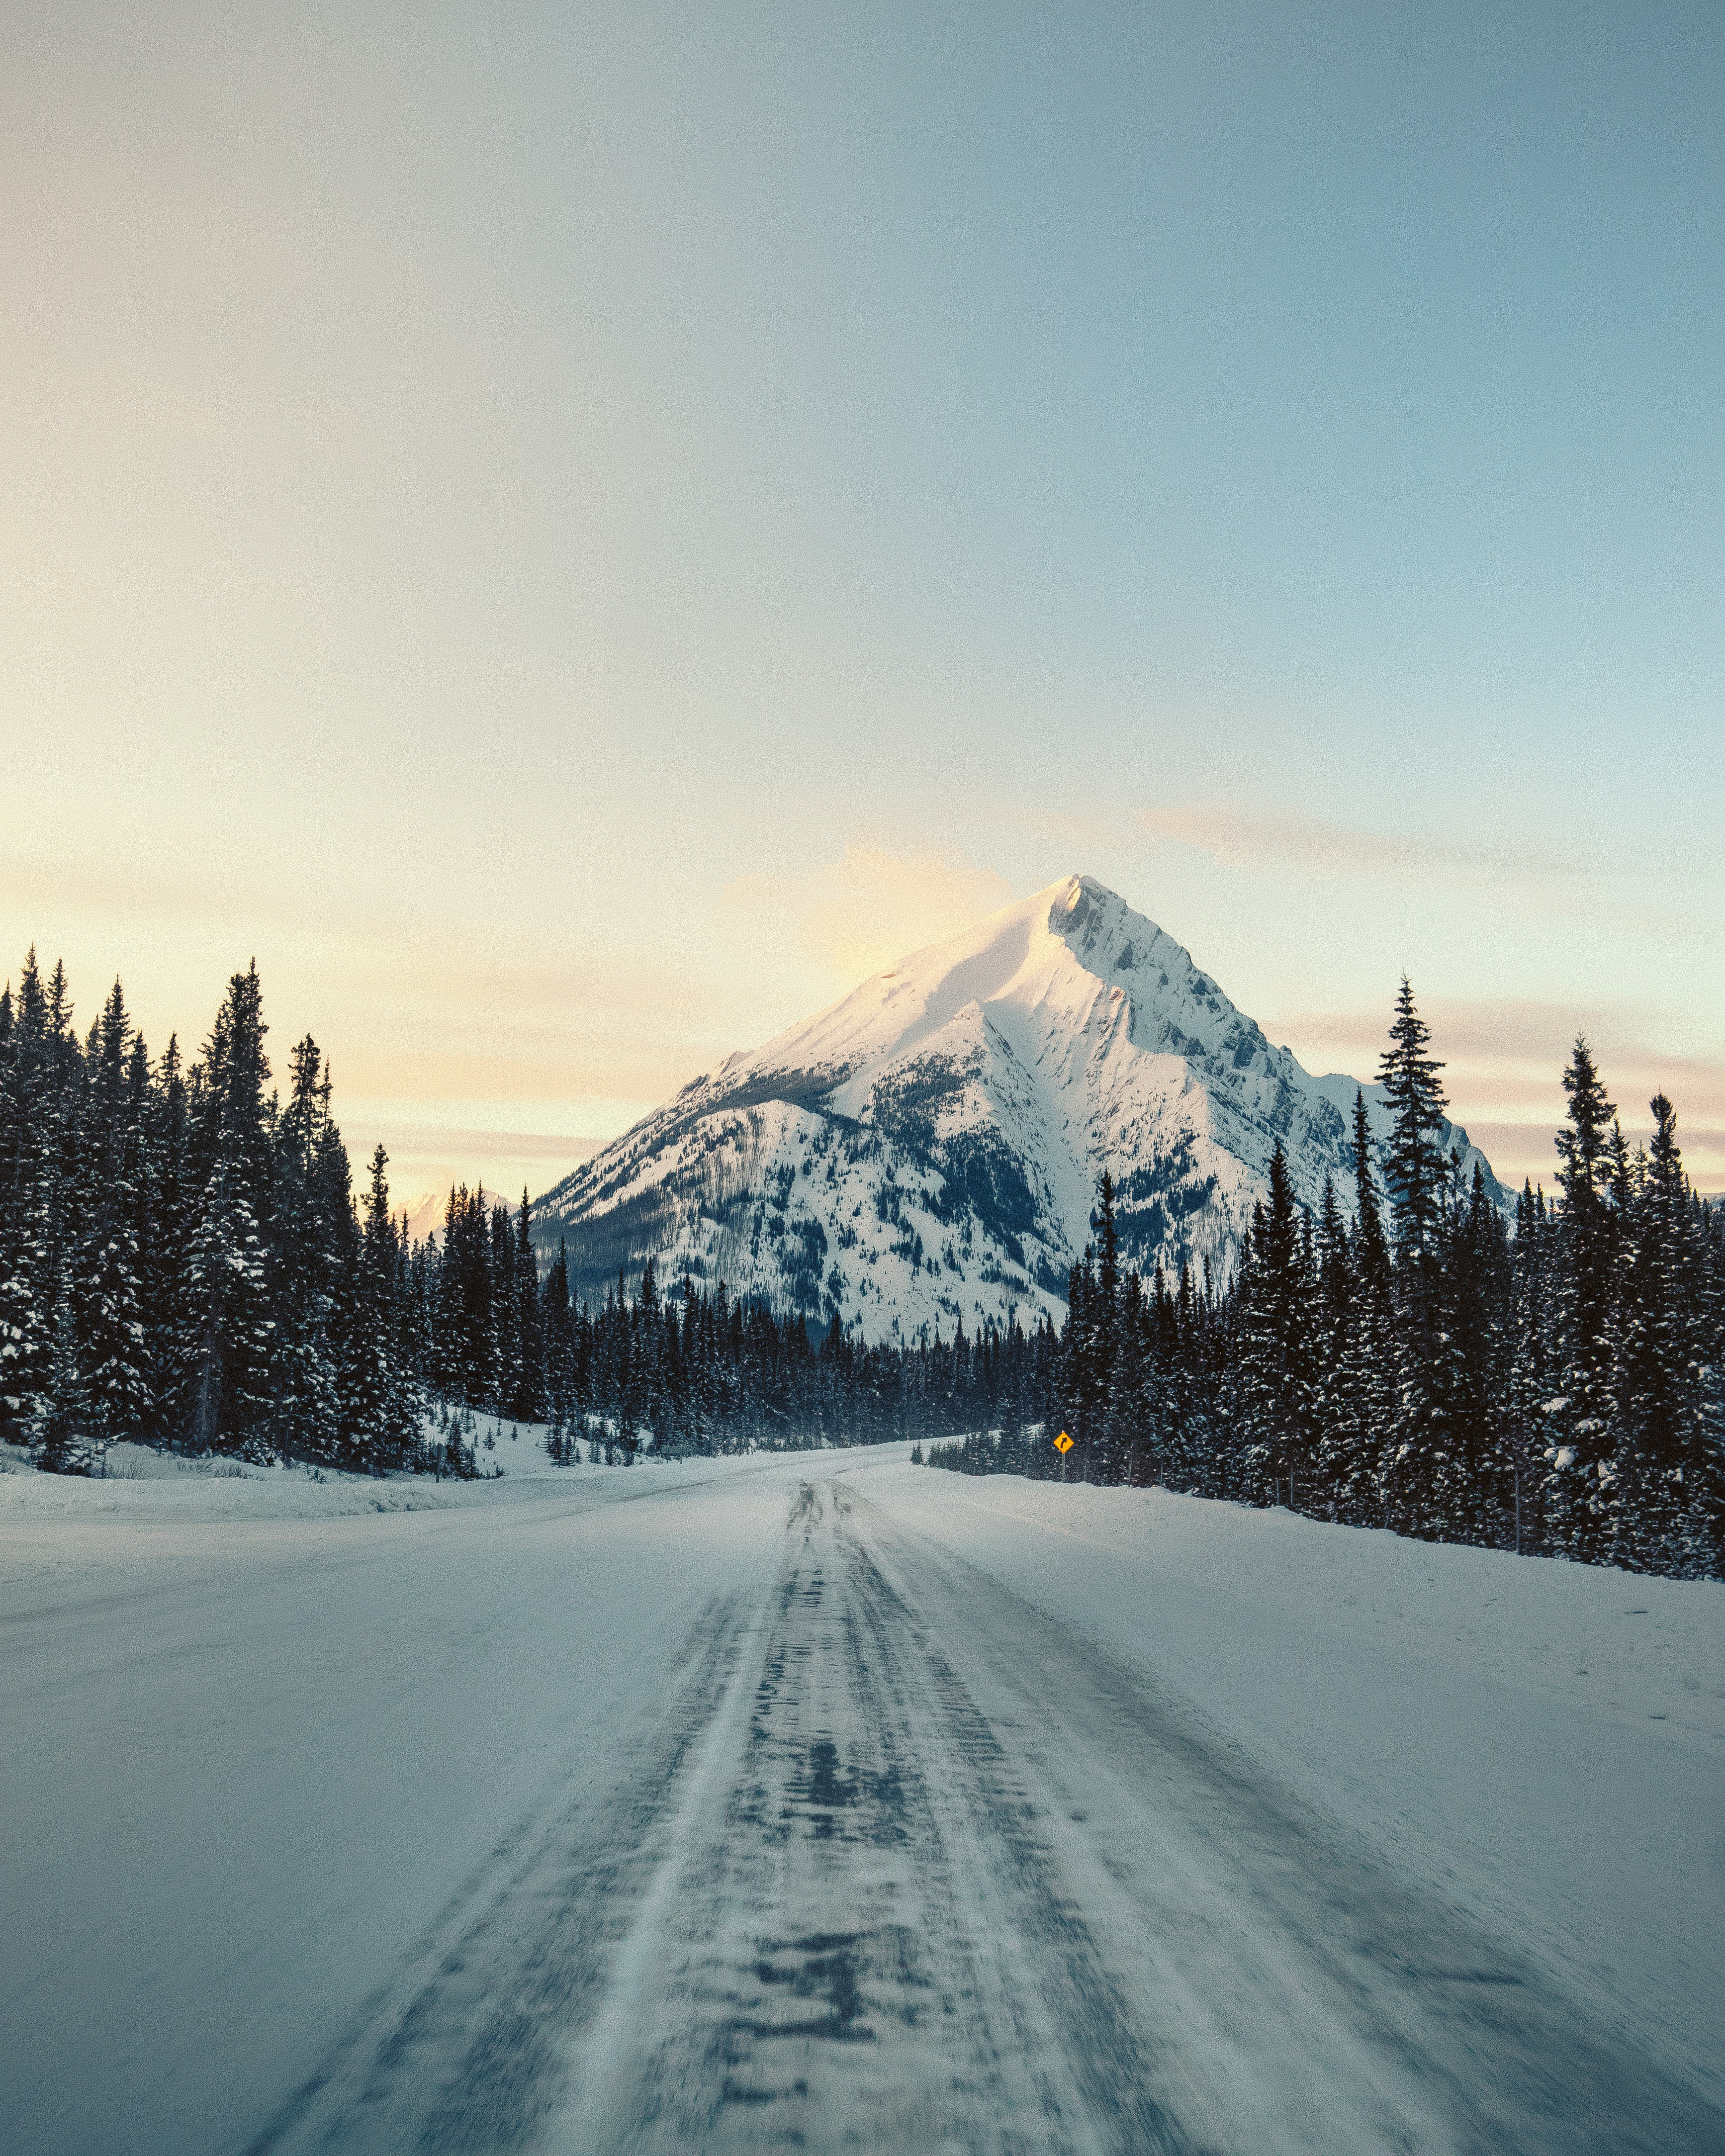 snowfield road and glacier mountain under blue sky